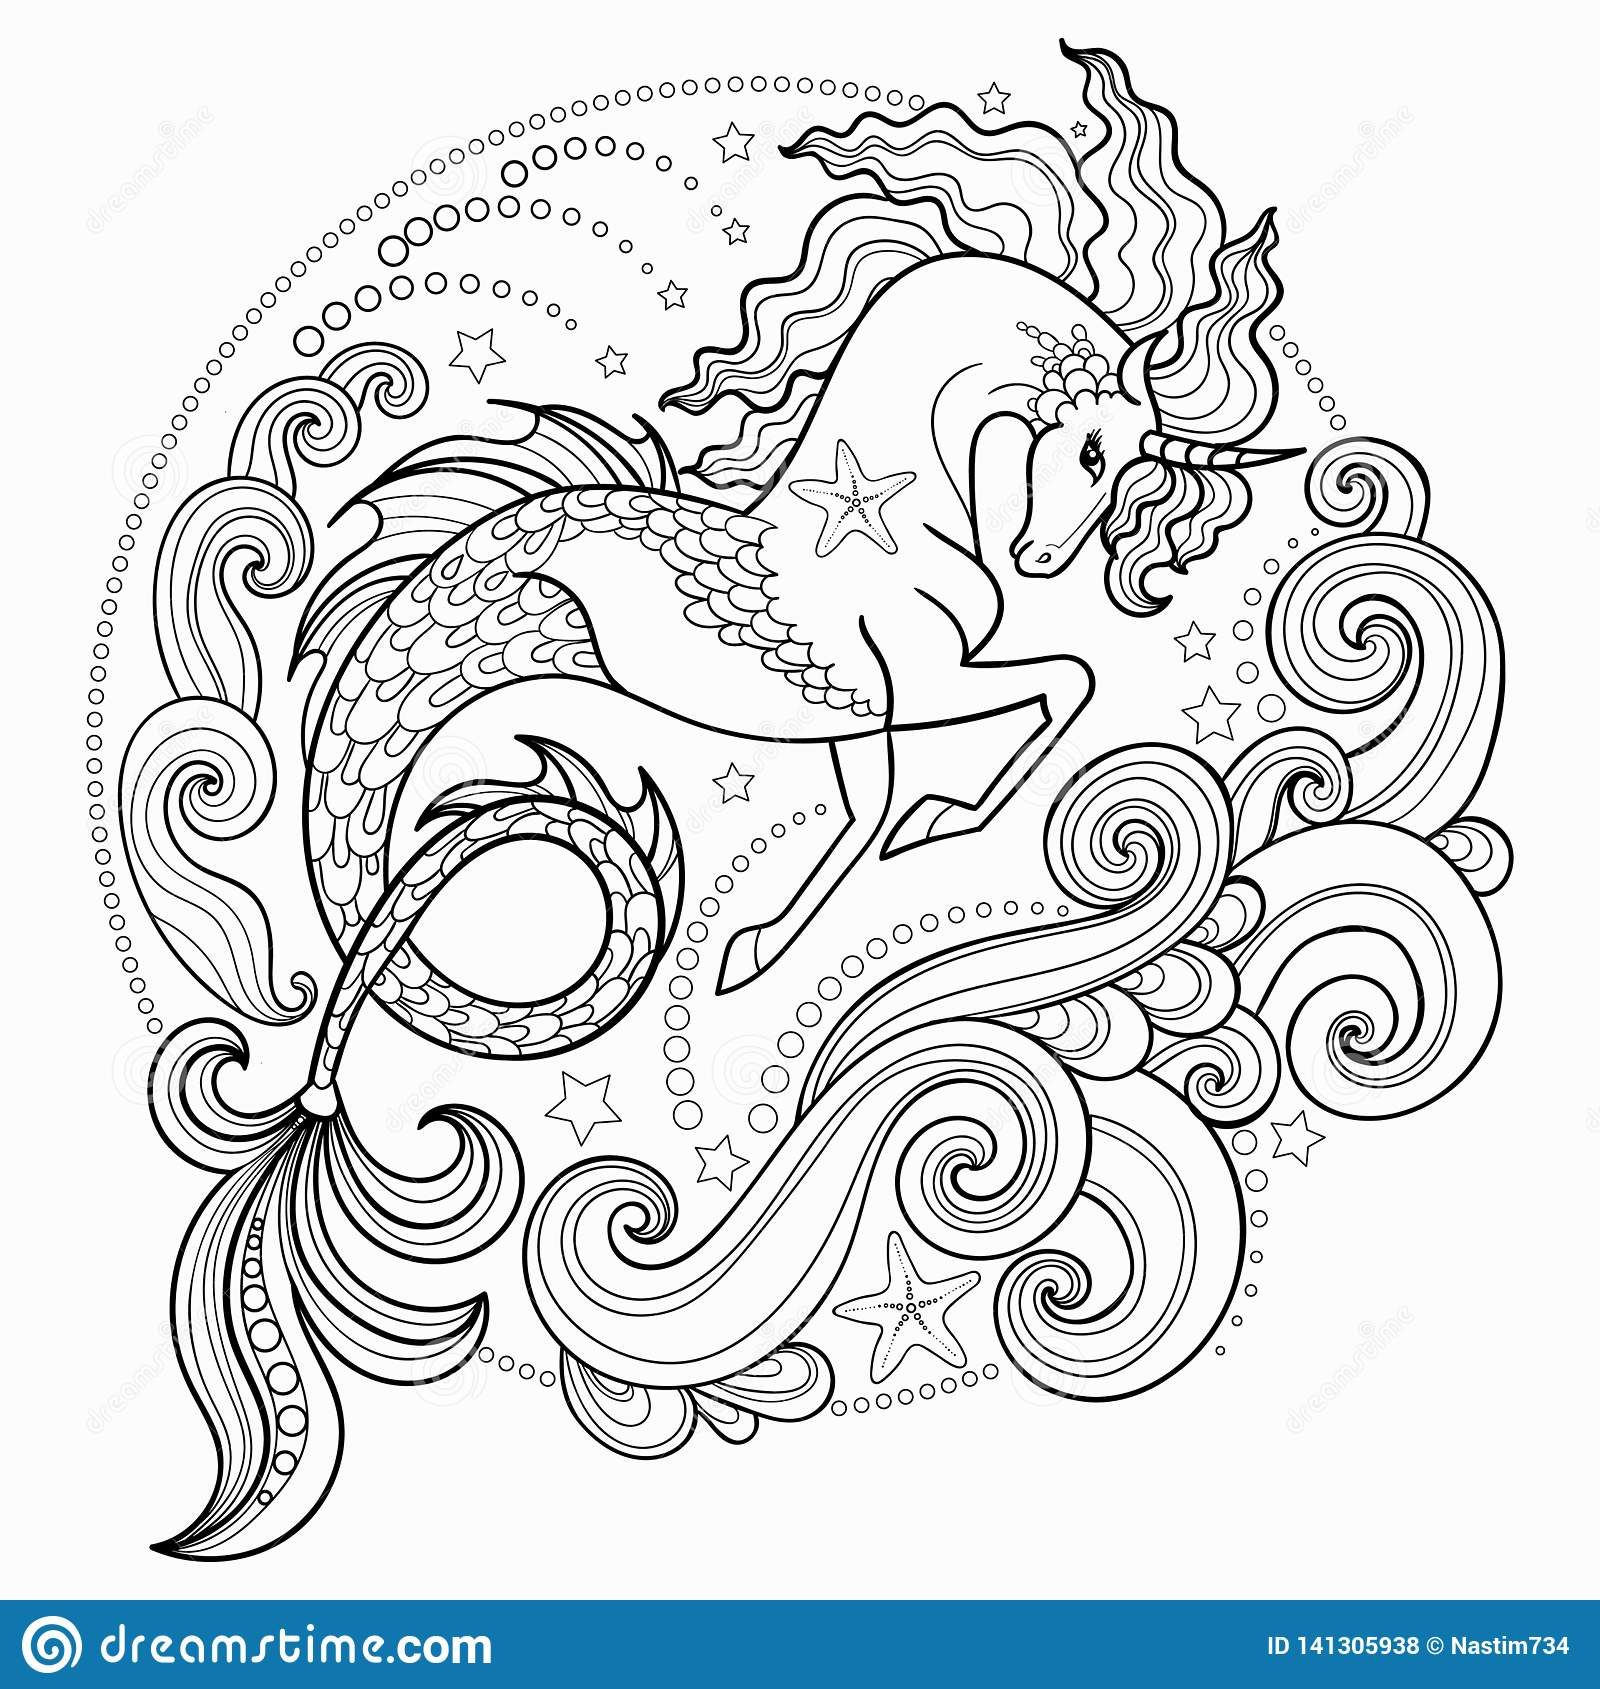 Beautiful Sea Unicorn Surrounded By Waves Hippocampus Black And